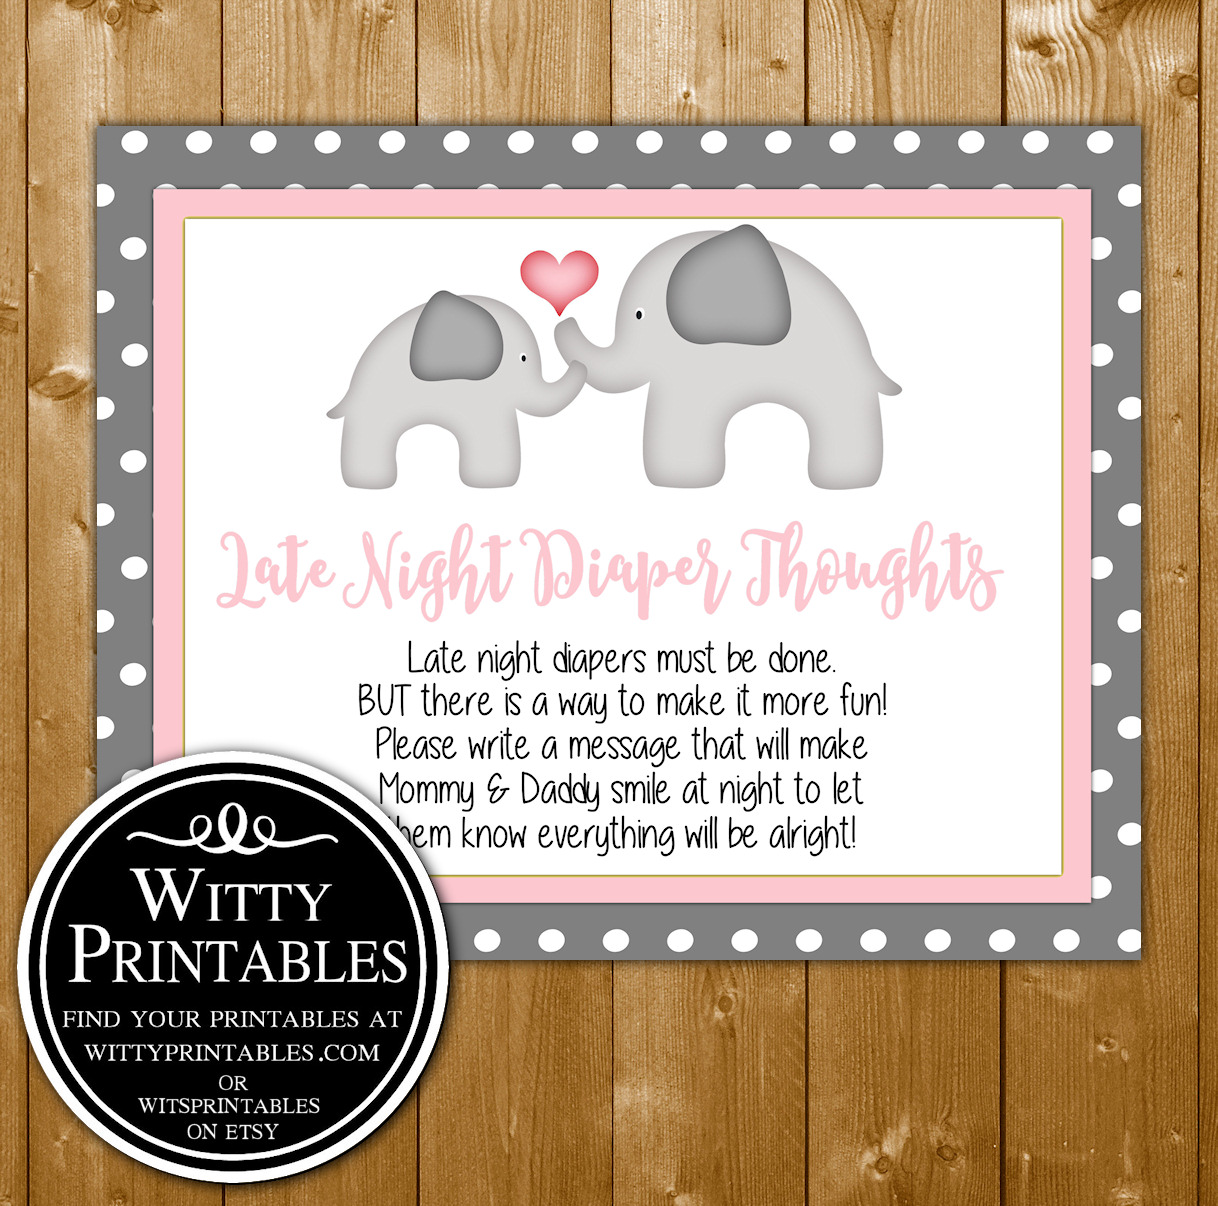 photo relating to Late Night Diapers Free Printable named Late Evening Diaper Issues Child Shower Video game Printable Purple Elephant Concept for a Female Boy or girl Shower